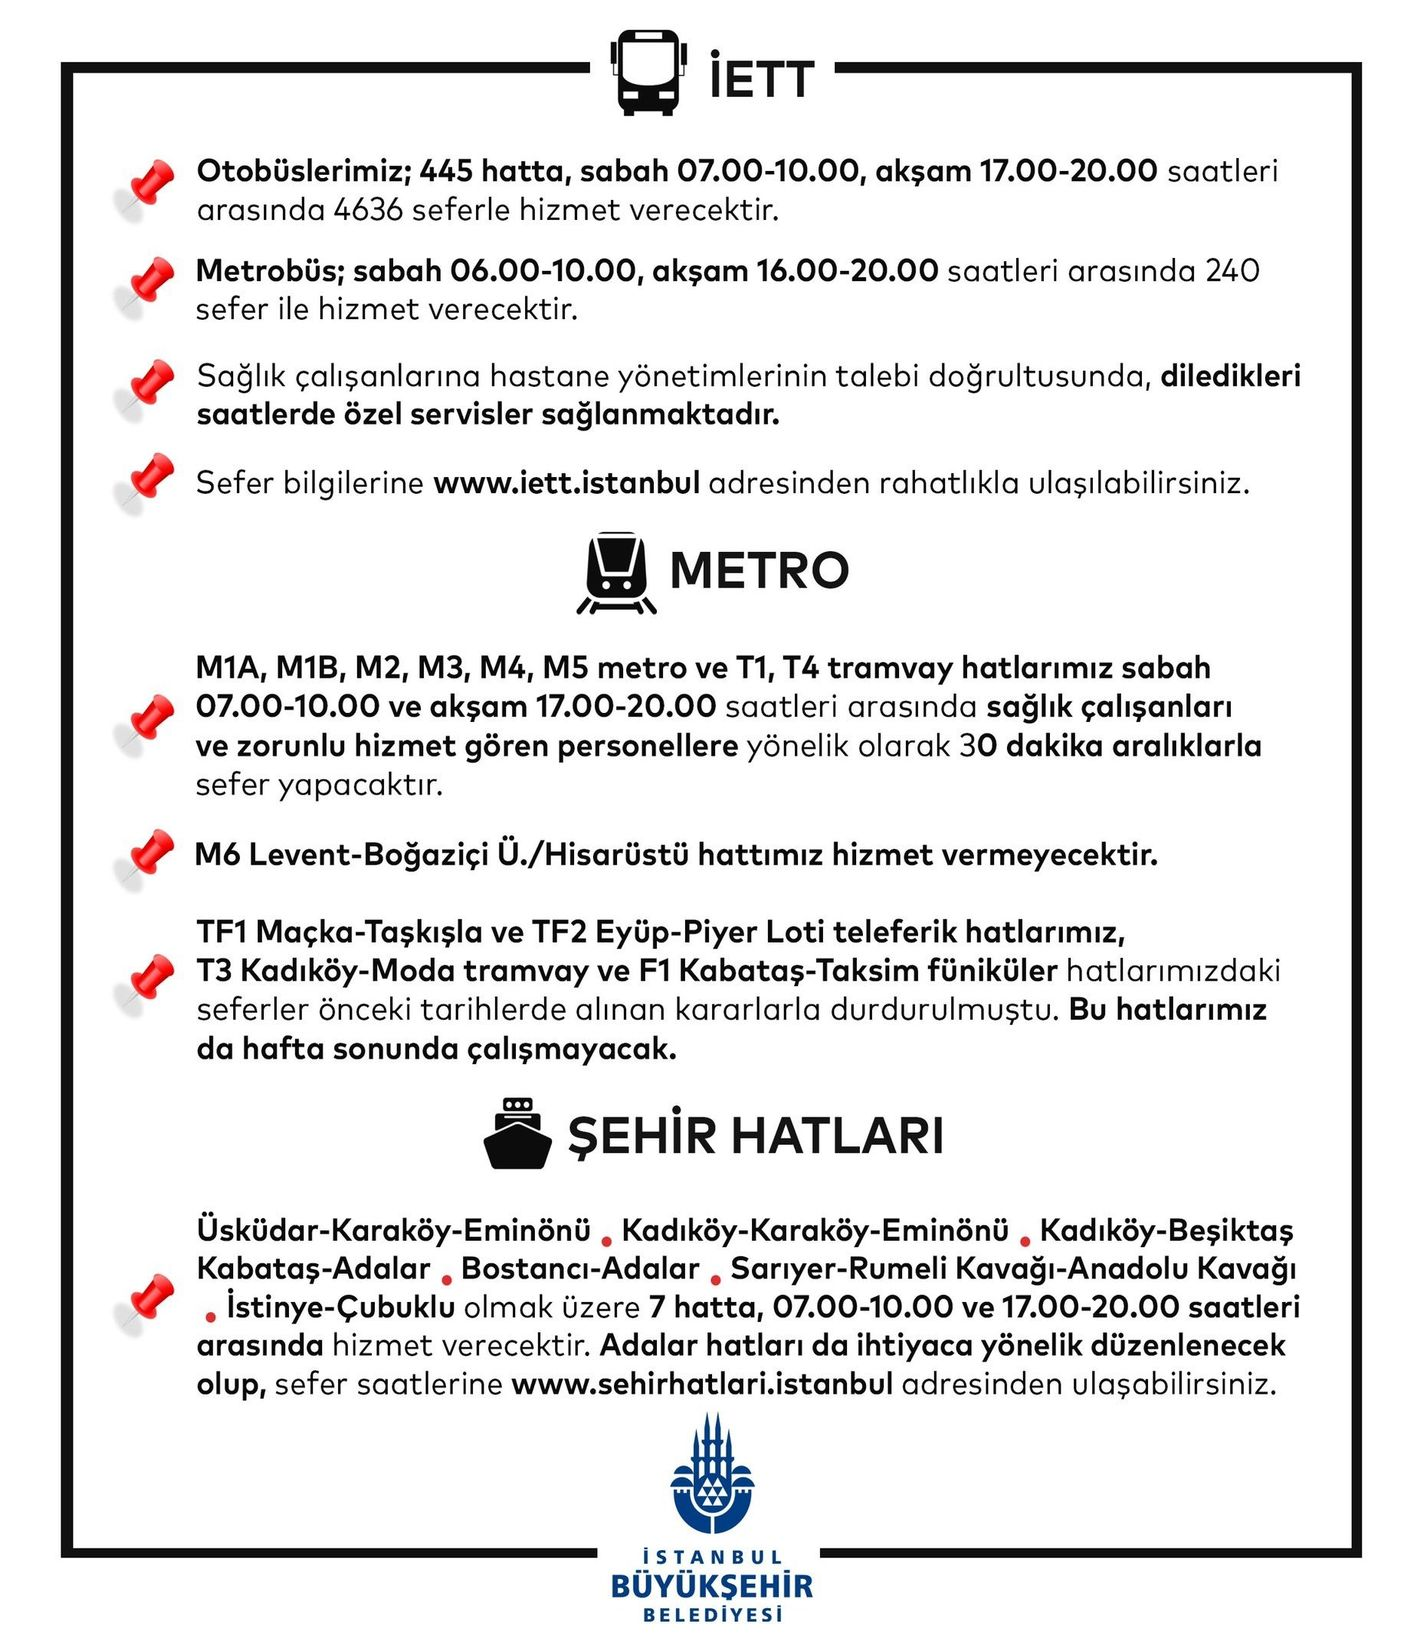 When will the public transportation be done in Istanbul at the weekend?